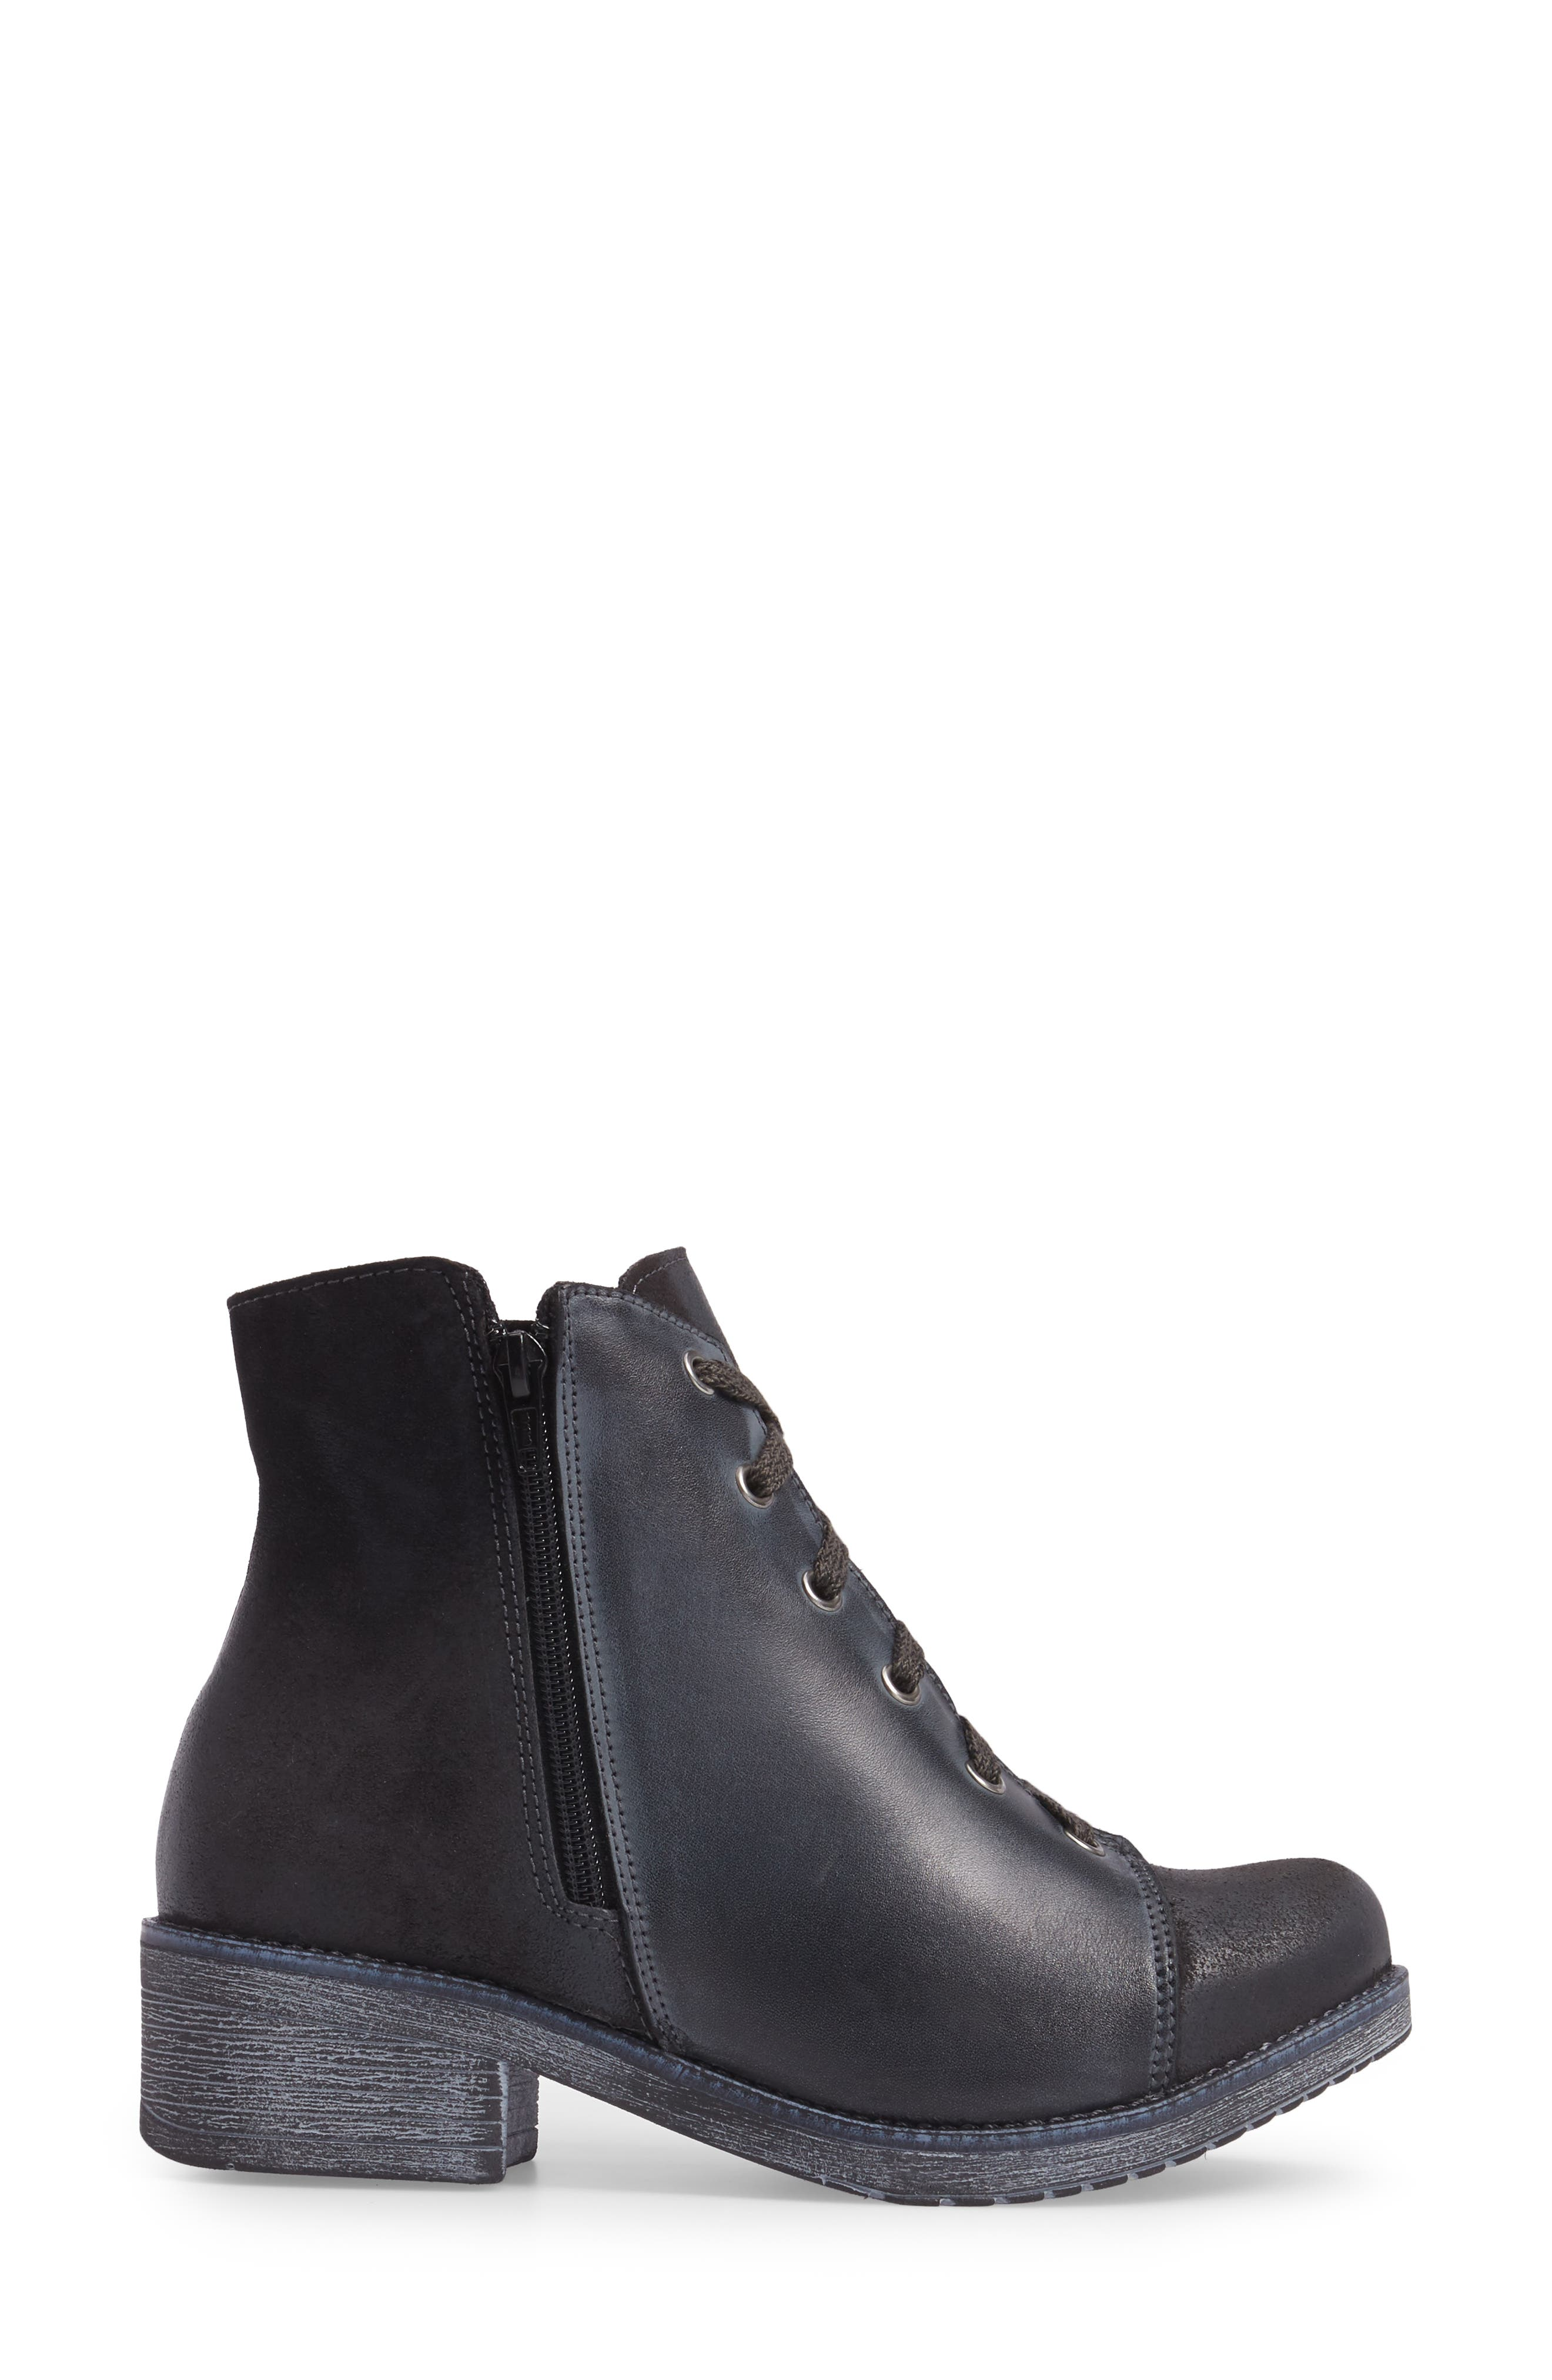 Alternate Image 3  - Naot Groovy Lace Up Bootie (Women)